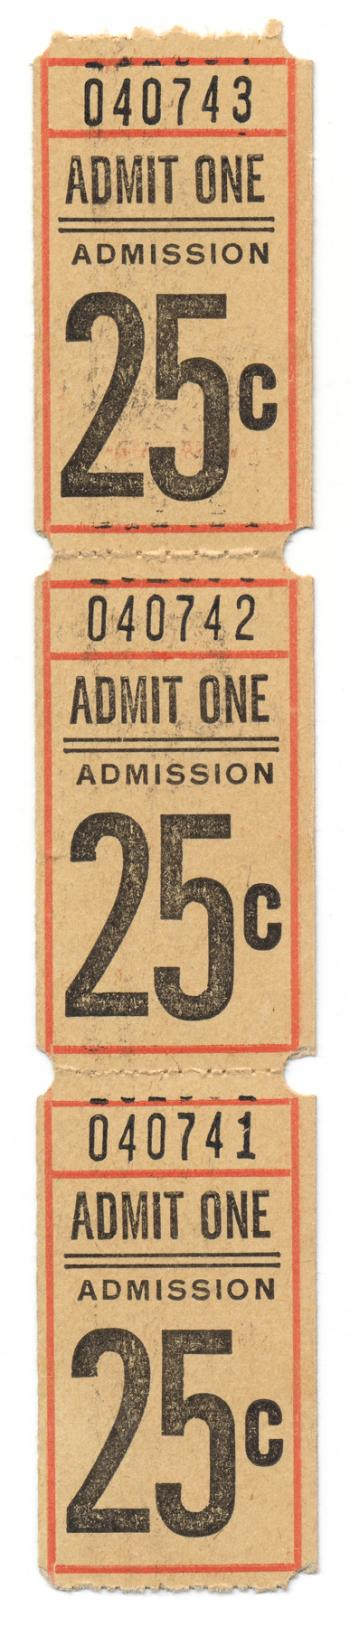 Vintage Admit One Ticket x3